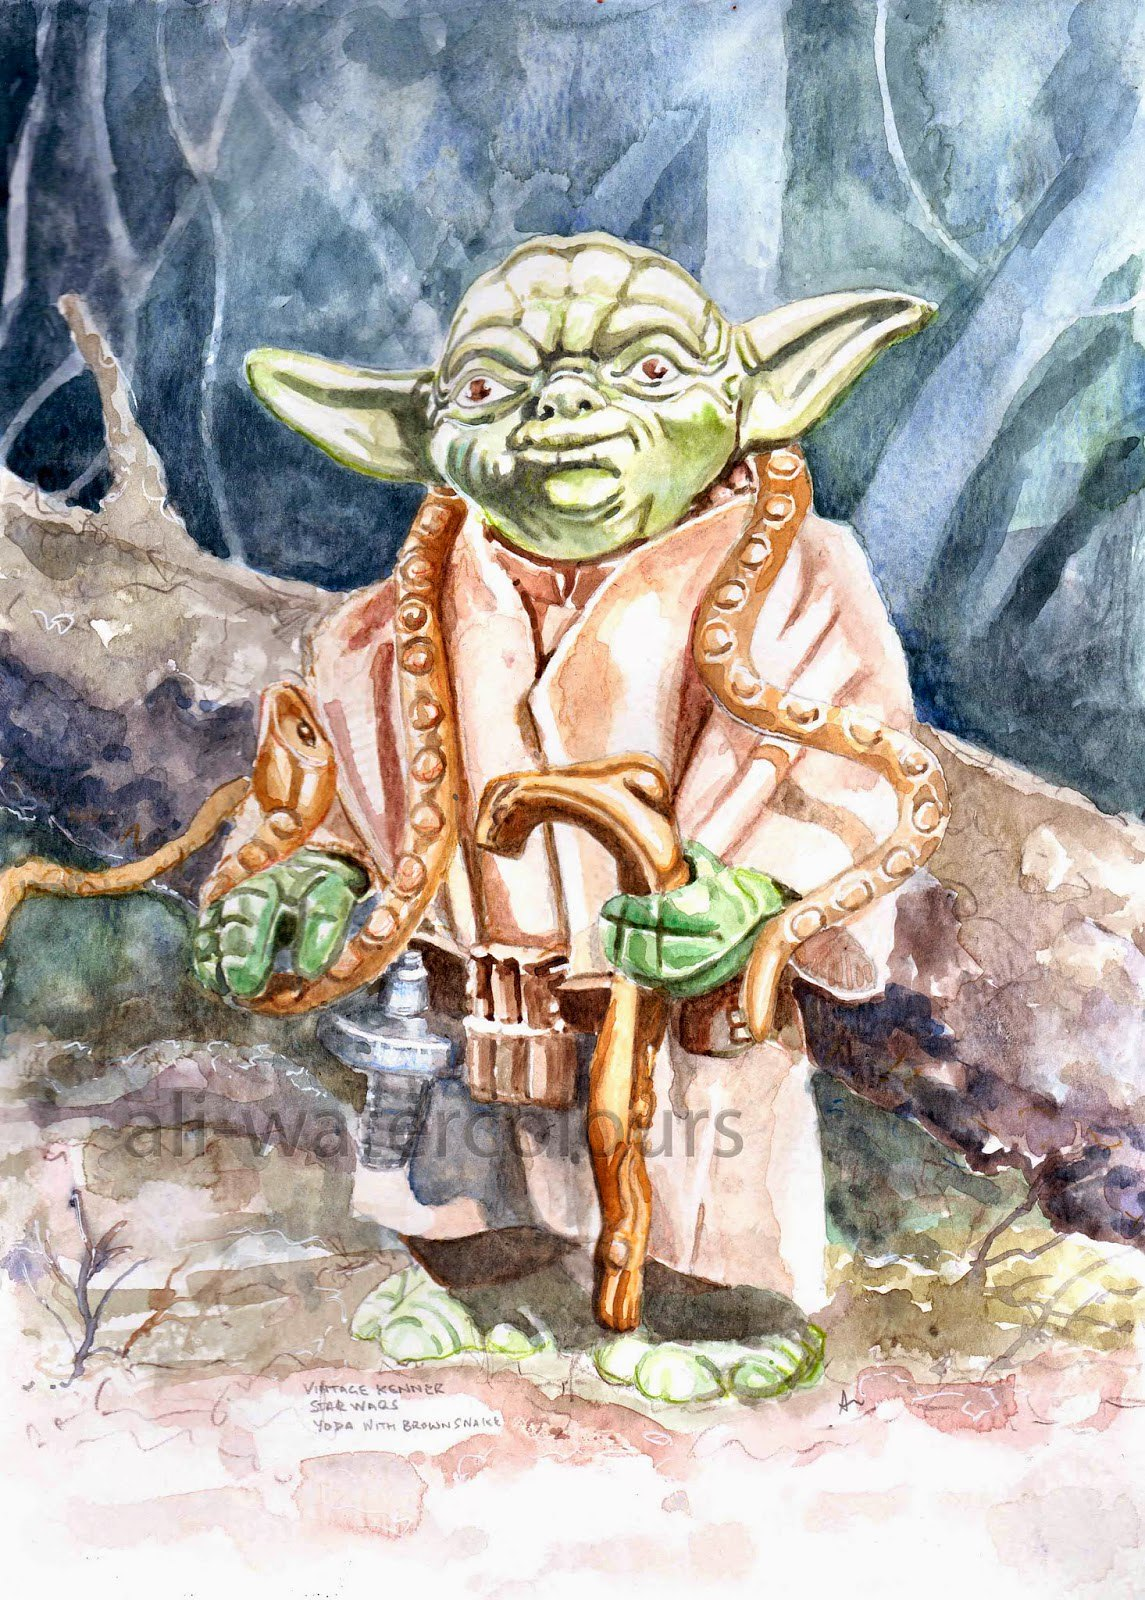 Vintage Star Wars toys, the art of Alastair Eales - Yoda Dagobah